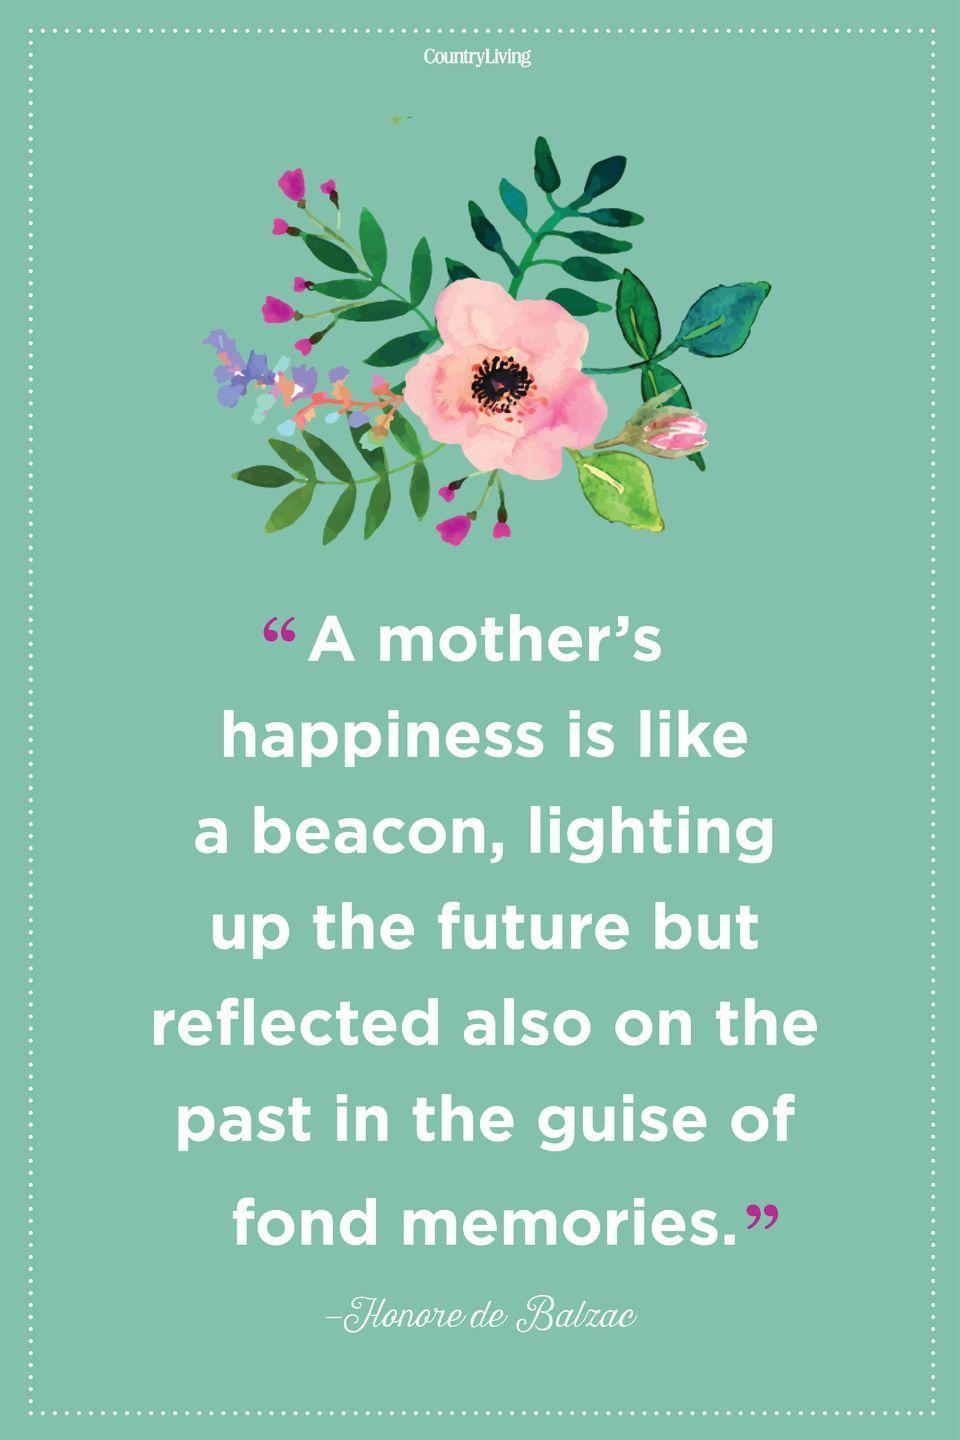 "<p>""A mother's happiness is like a beacon, lighting up the future but reflected also on the past in the guise of fond memories.""</p>"